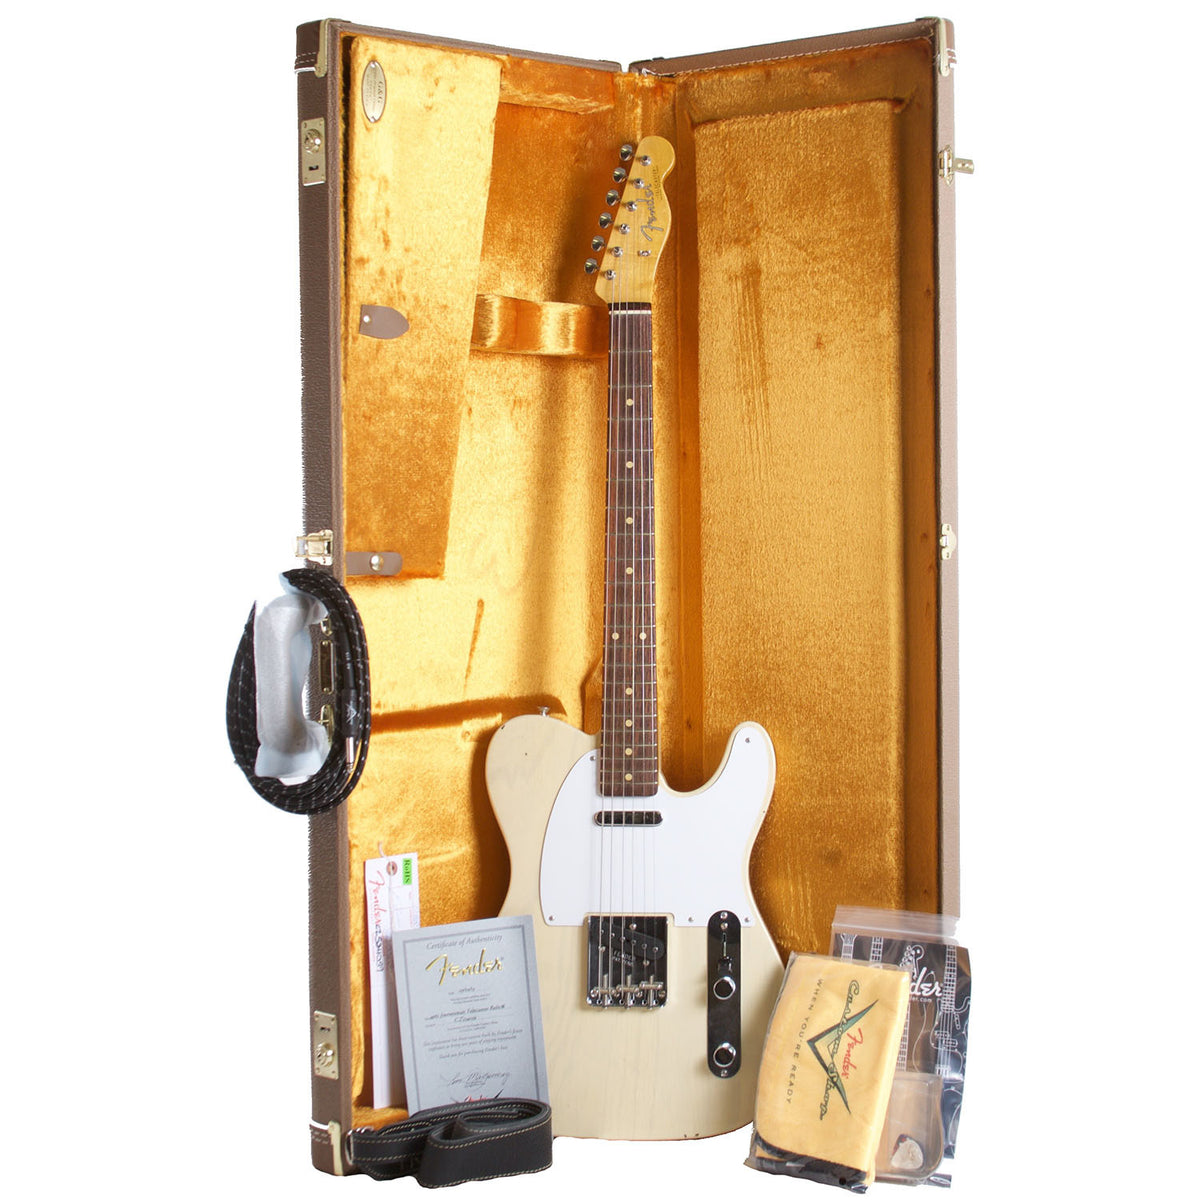 2015 Fender Custom Shop Junkyard Dog '62 Telecaster, Journeyman Relic - Garrett Park Guitars  - 9